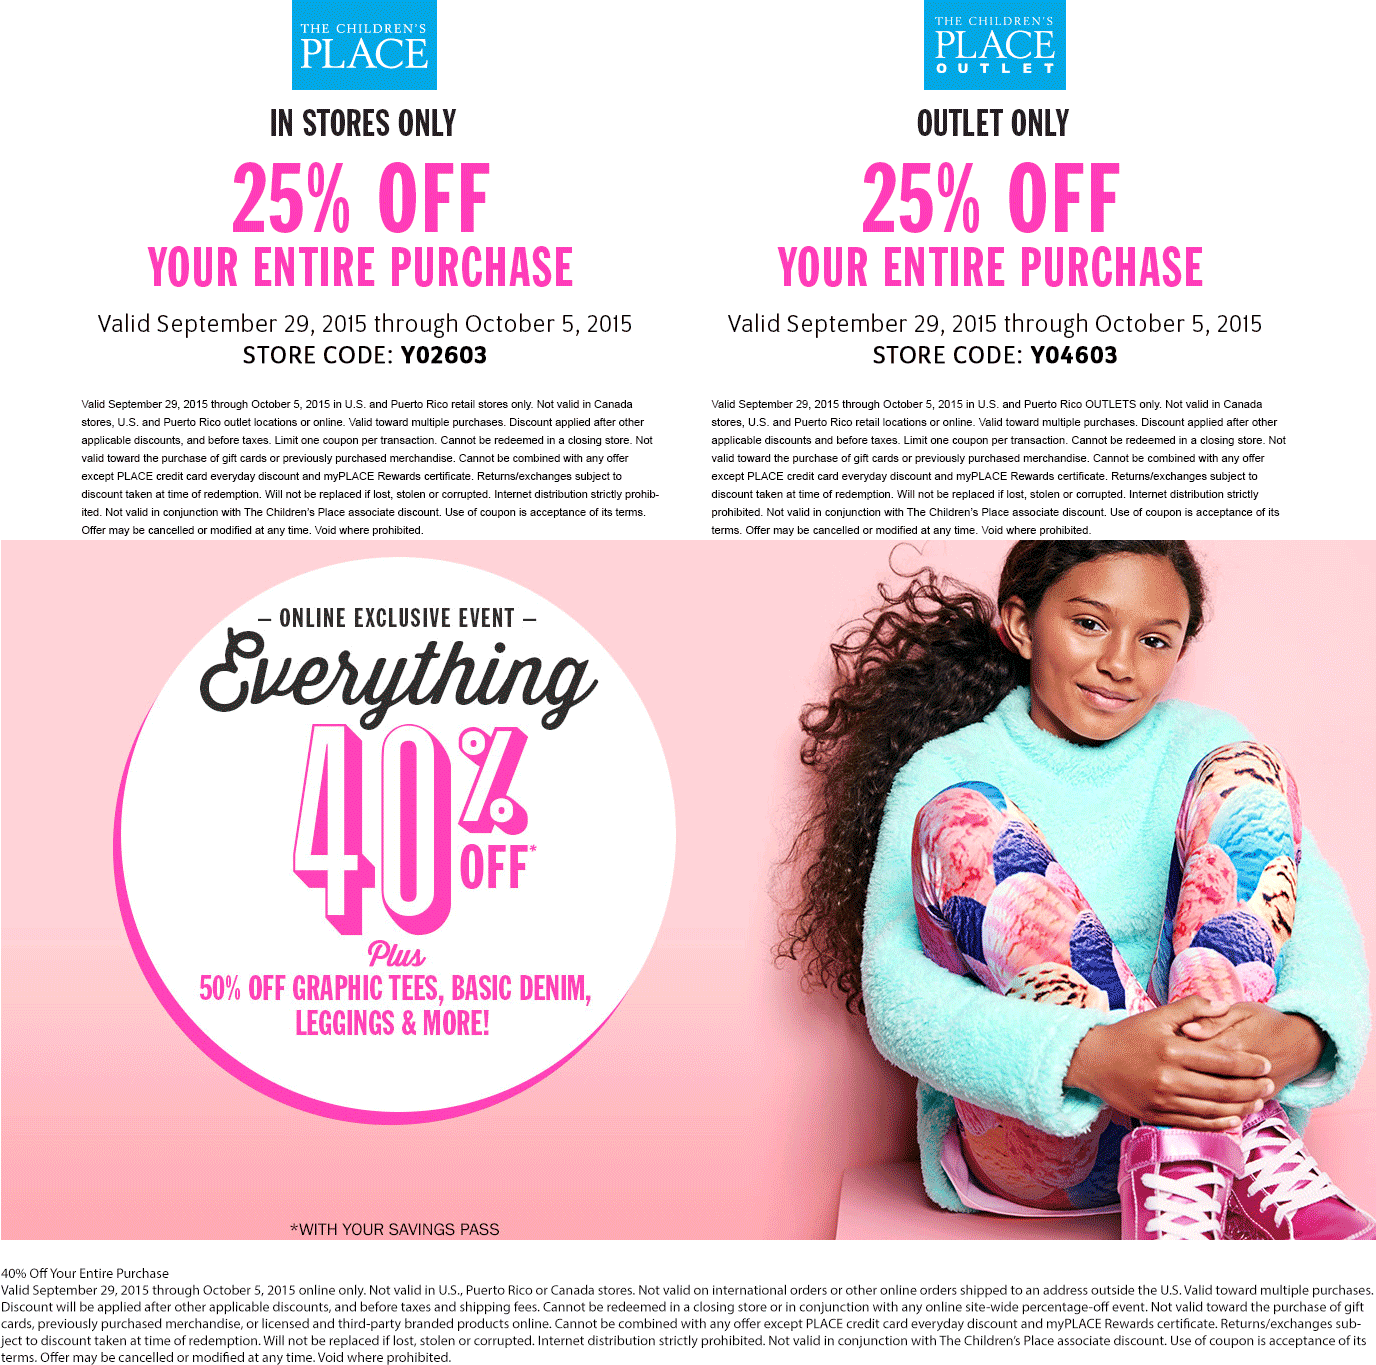 The Childrens Place Coupon November 2018 25% off at The Childrens Place & outlet locations, or 40% online via promo code ONLINE40